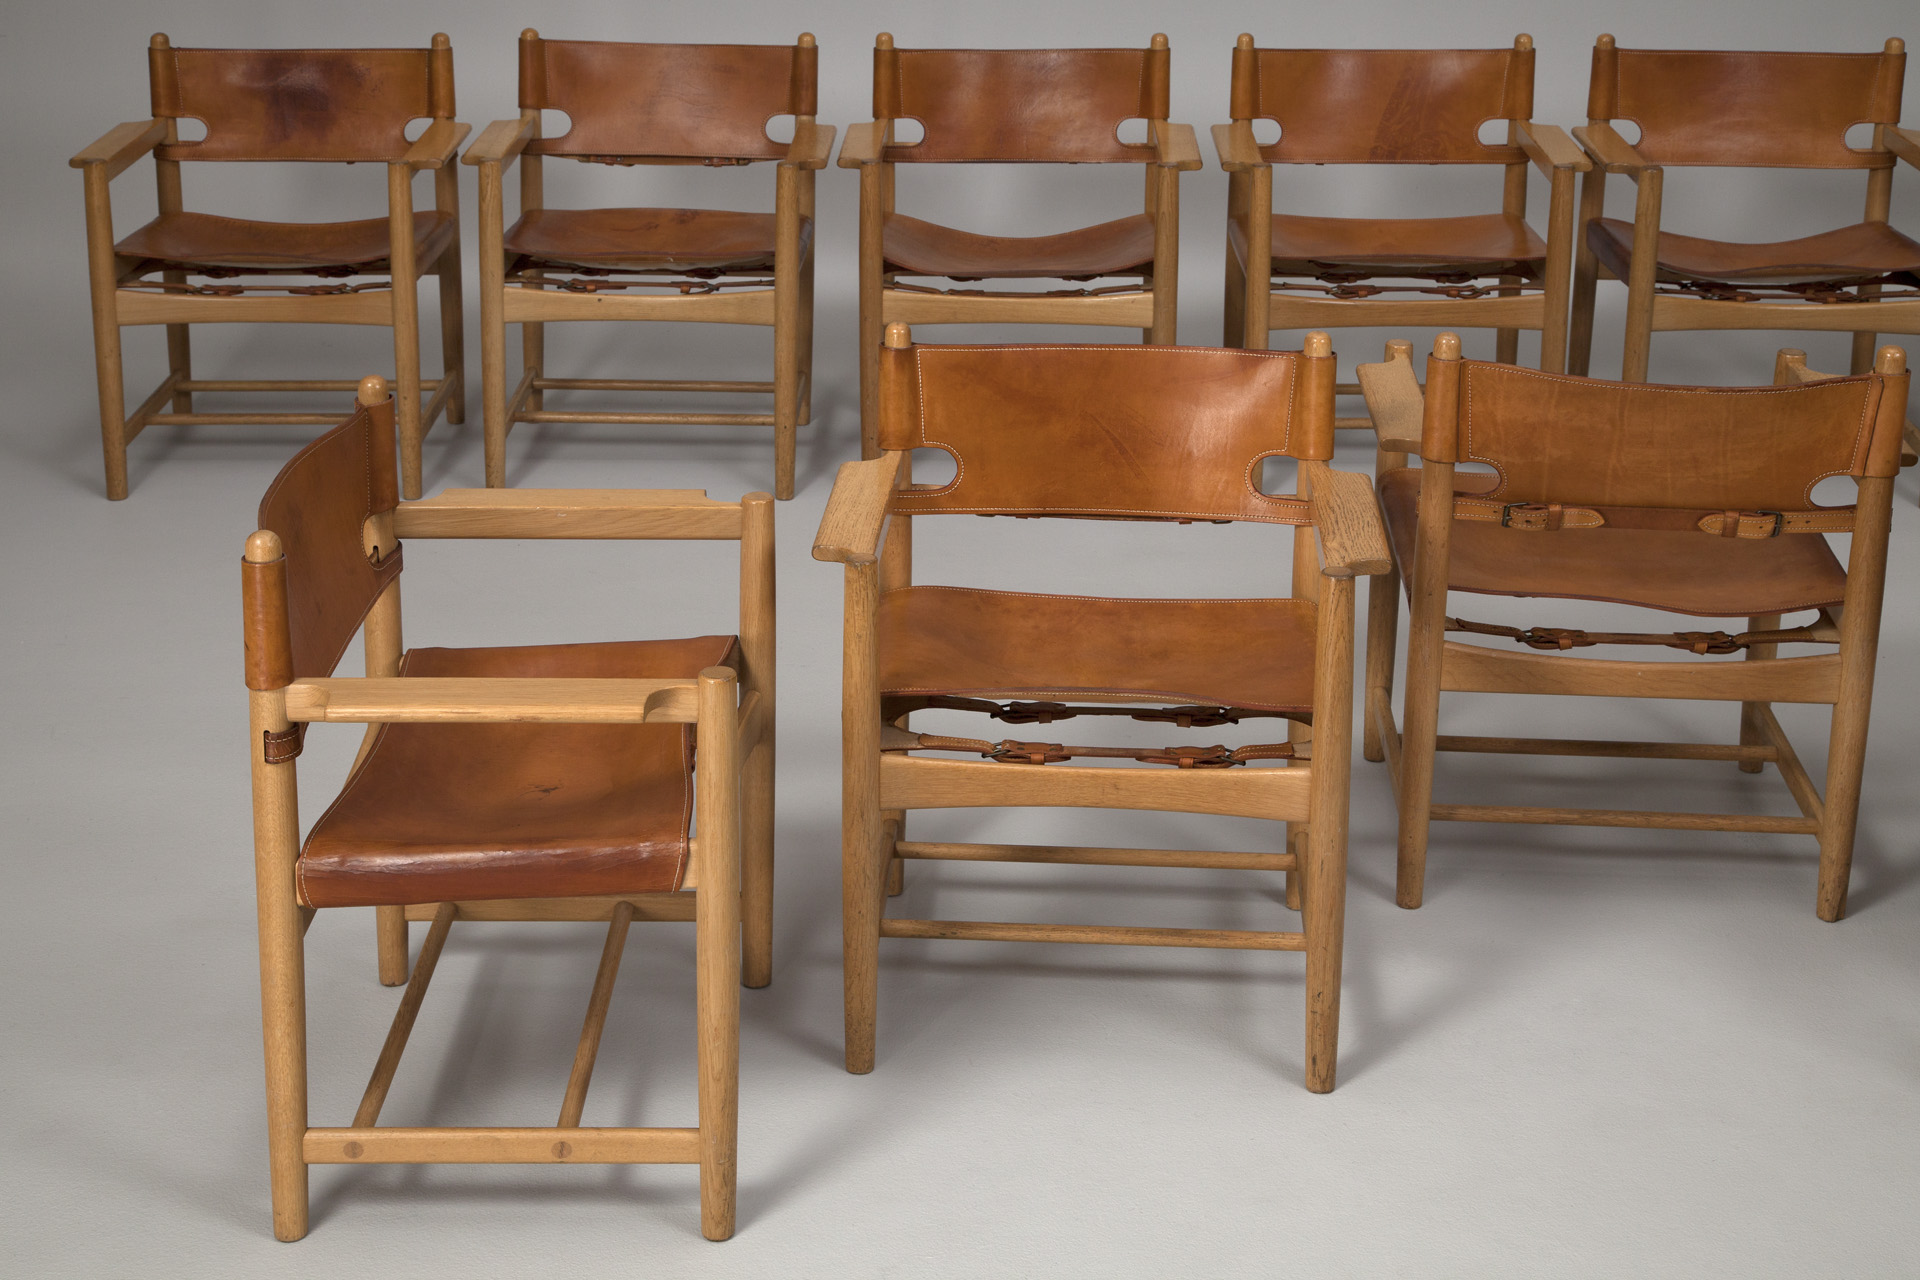 Jacksons Set of Ten Hunting Chairs B¸rge Mogensen